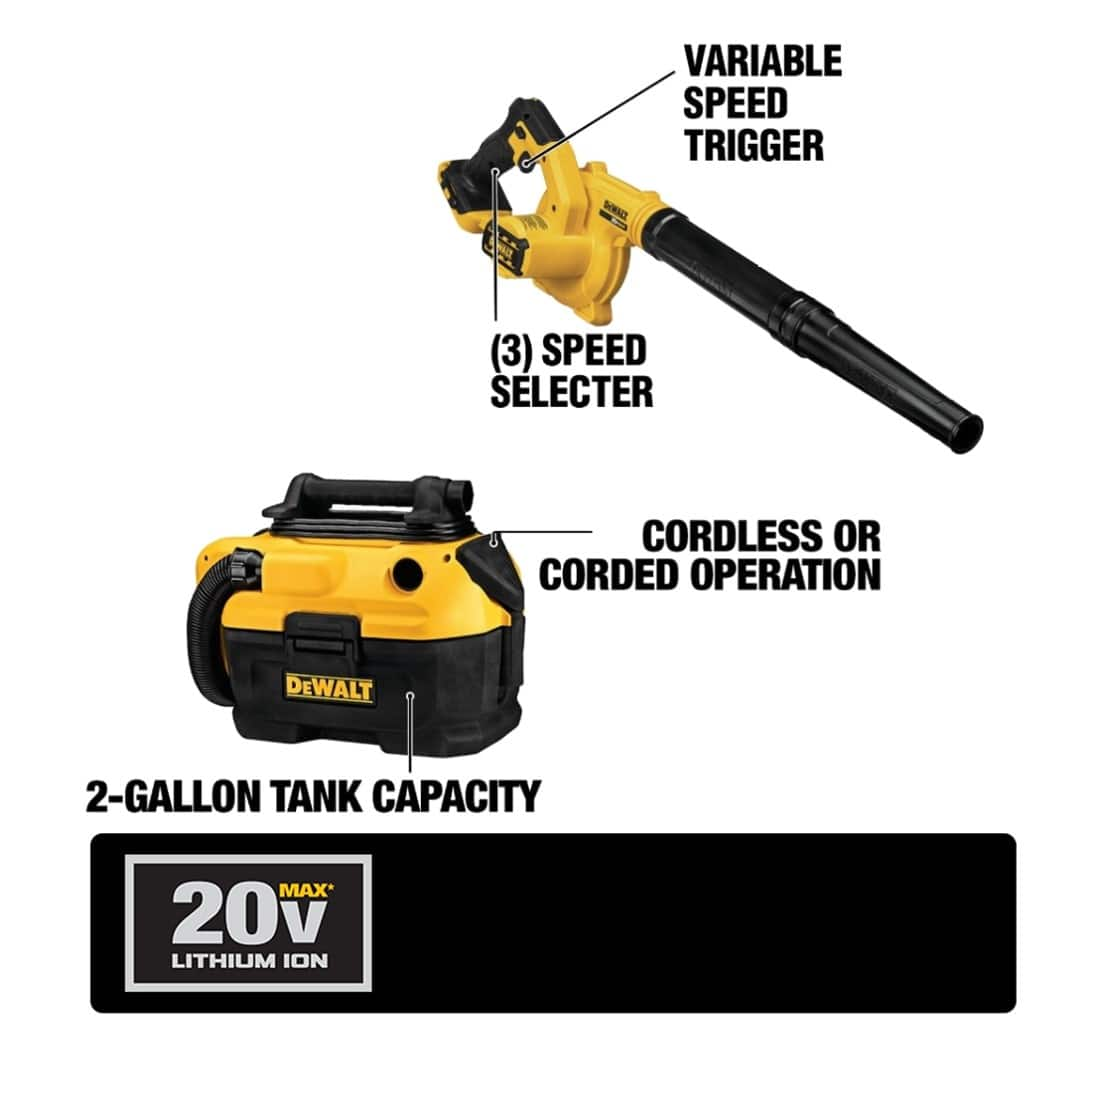 The DCE100 blower has a 3-speed design and is ideal for clearing debris. The DCV517B Wet/Dry Vac contains a HEPA filter.